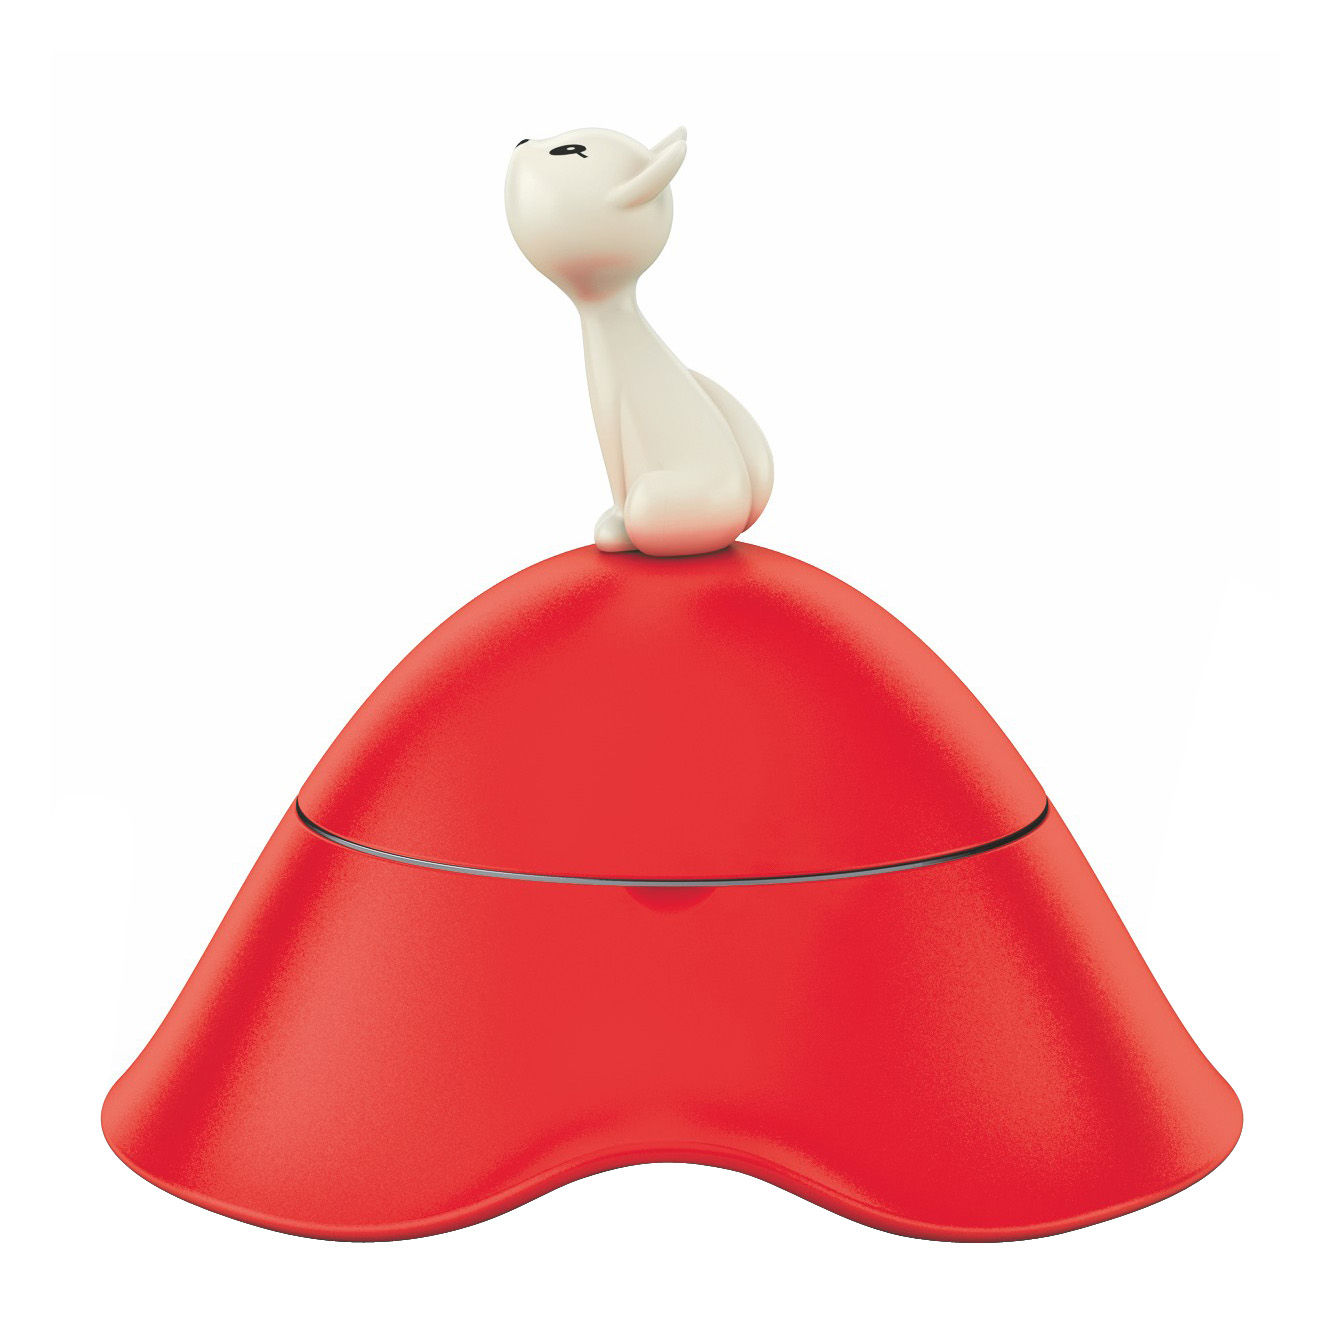 Decoration - Pets - Mio Dish - Cat bowl by A di Alessi - Red - Stainless steel, Thermoplastic resin